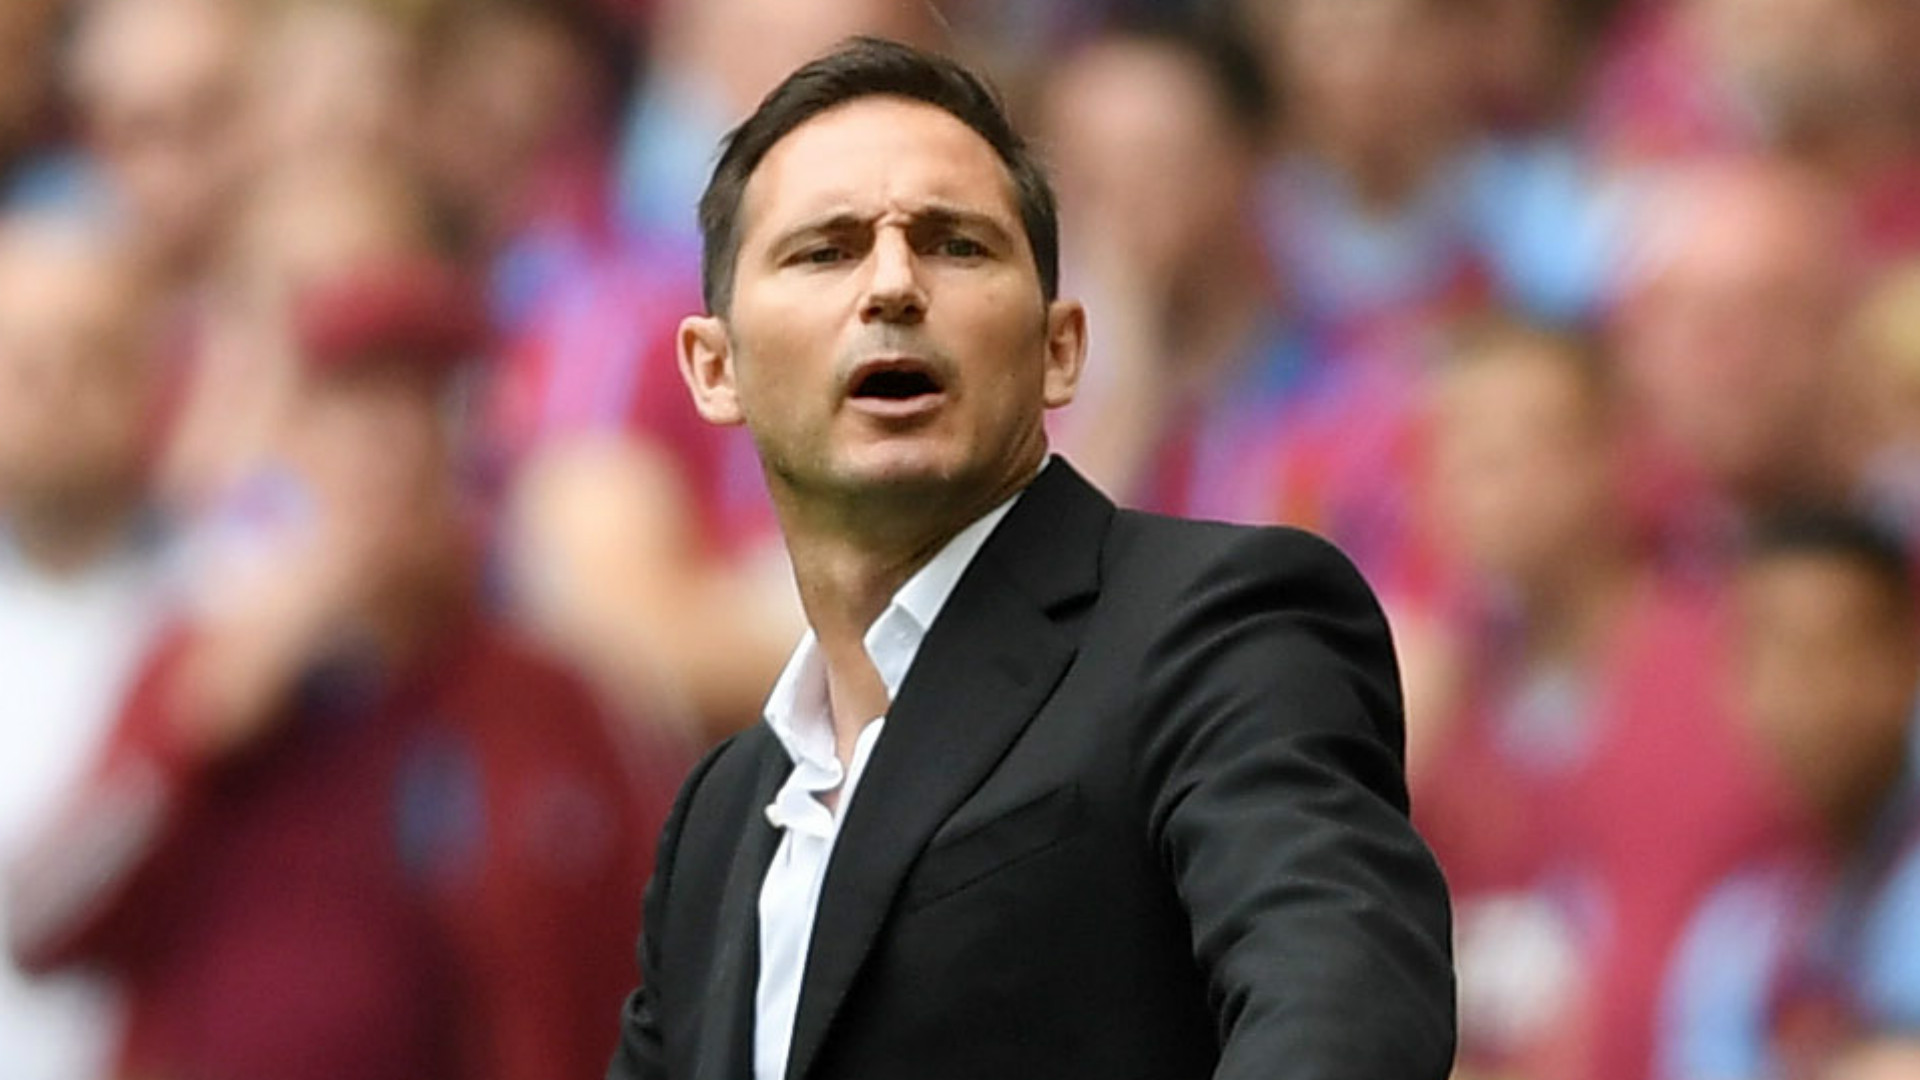 Chelsea set to confirm Frank Lampard appointment - but who will join him?